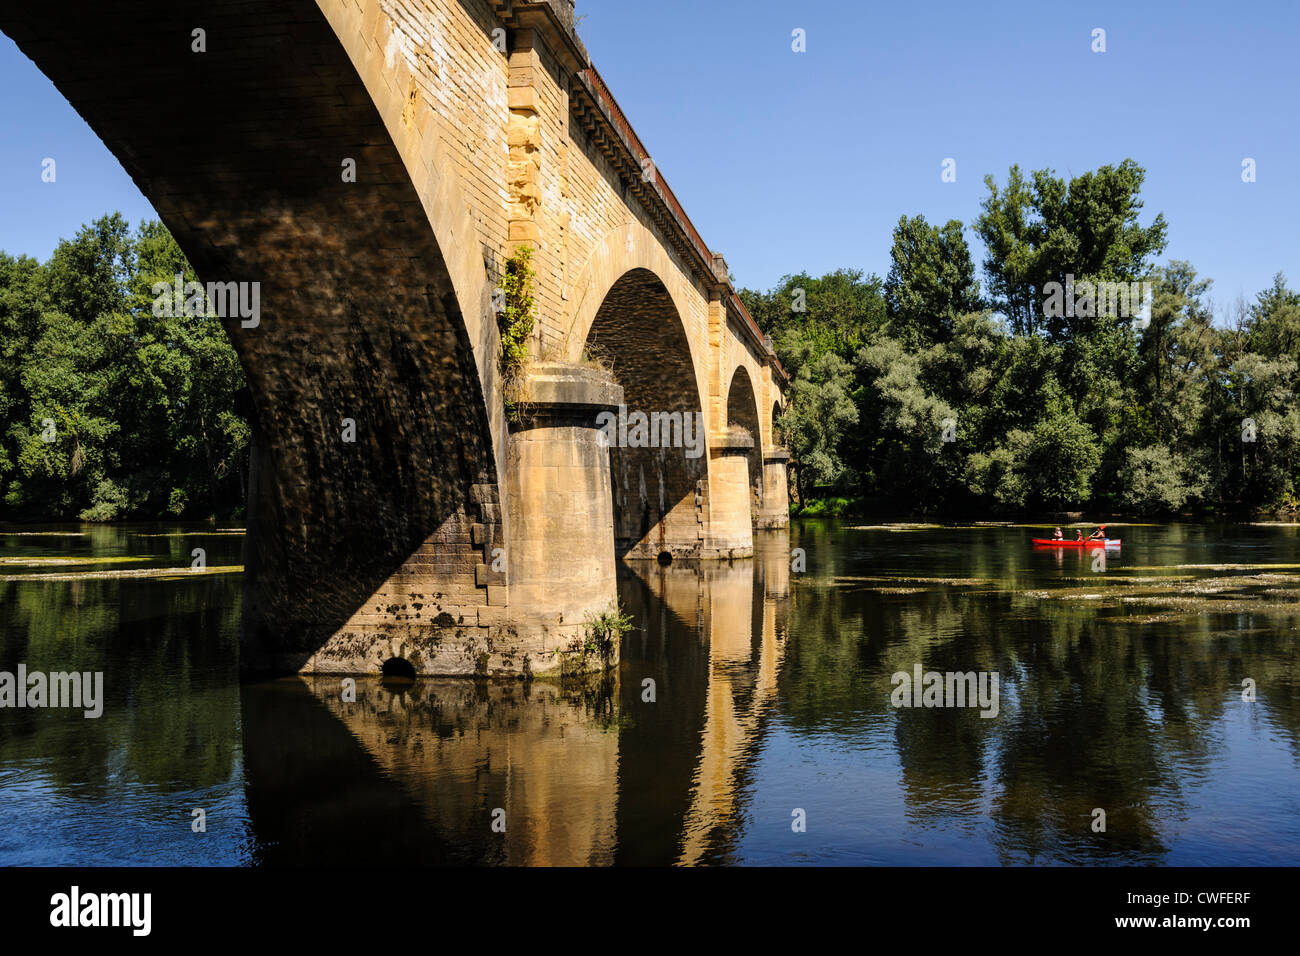 Family doing a canoe trip on the Dordogne river, Grolejac, Dordogne, Aquitaine, France - Stock Image